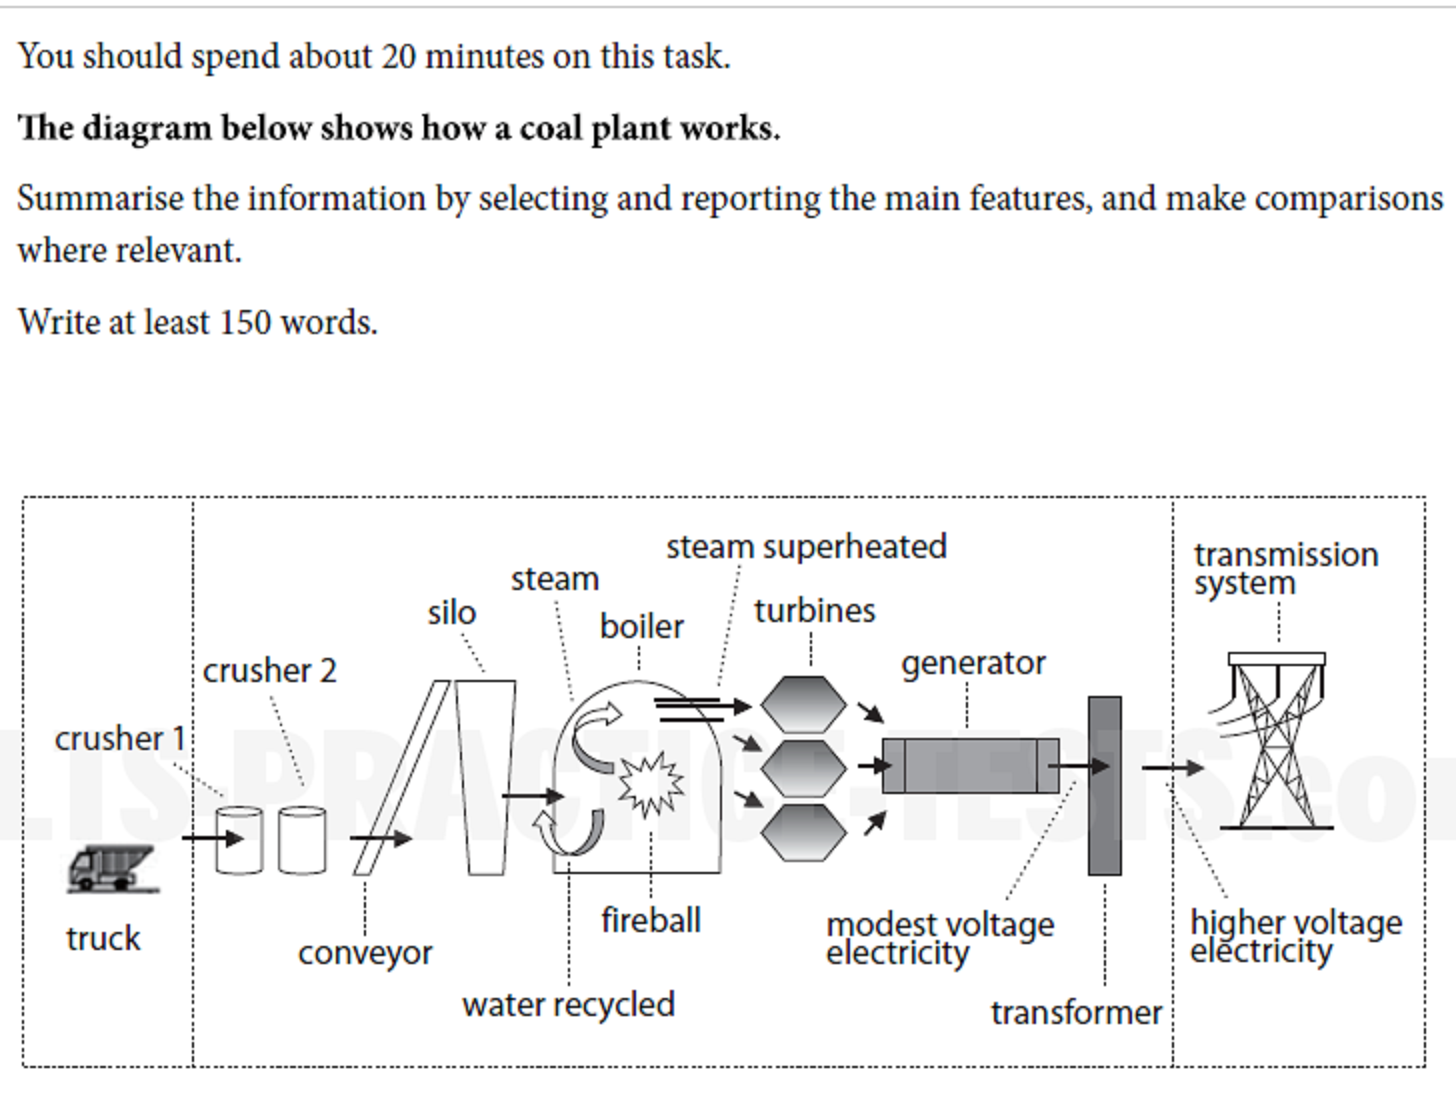 hight resolution of the diagram illustrates the coal plant process outlining from plants taken by a truck all the way through to producing electricity for transmission system